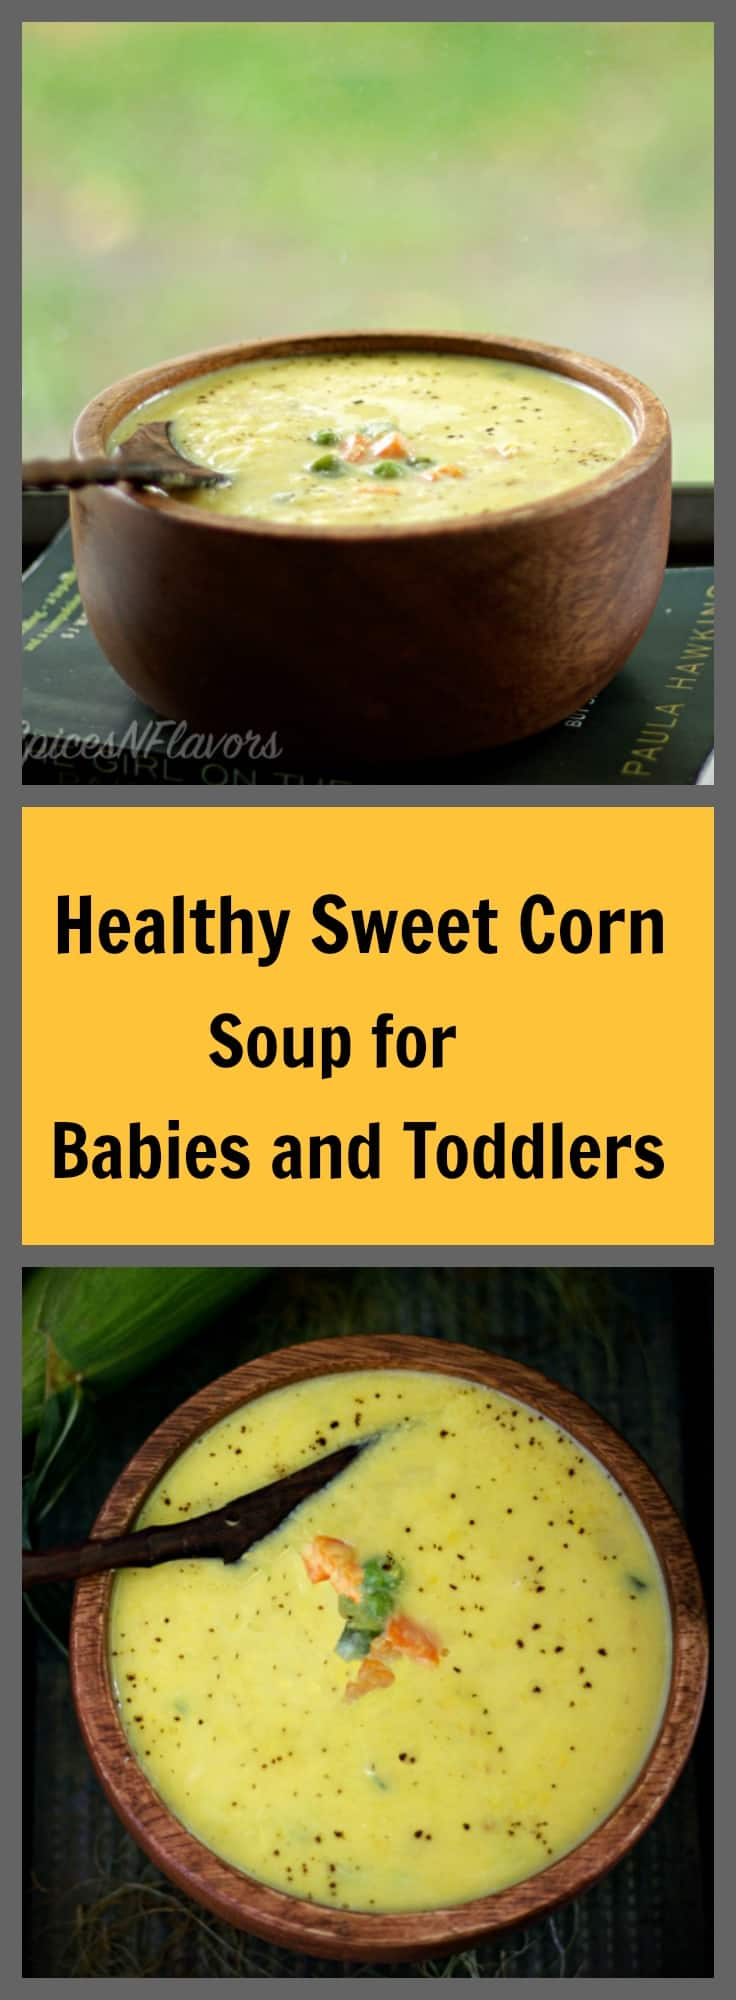 healthy-sweet-corn-soup-for-babies